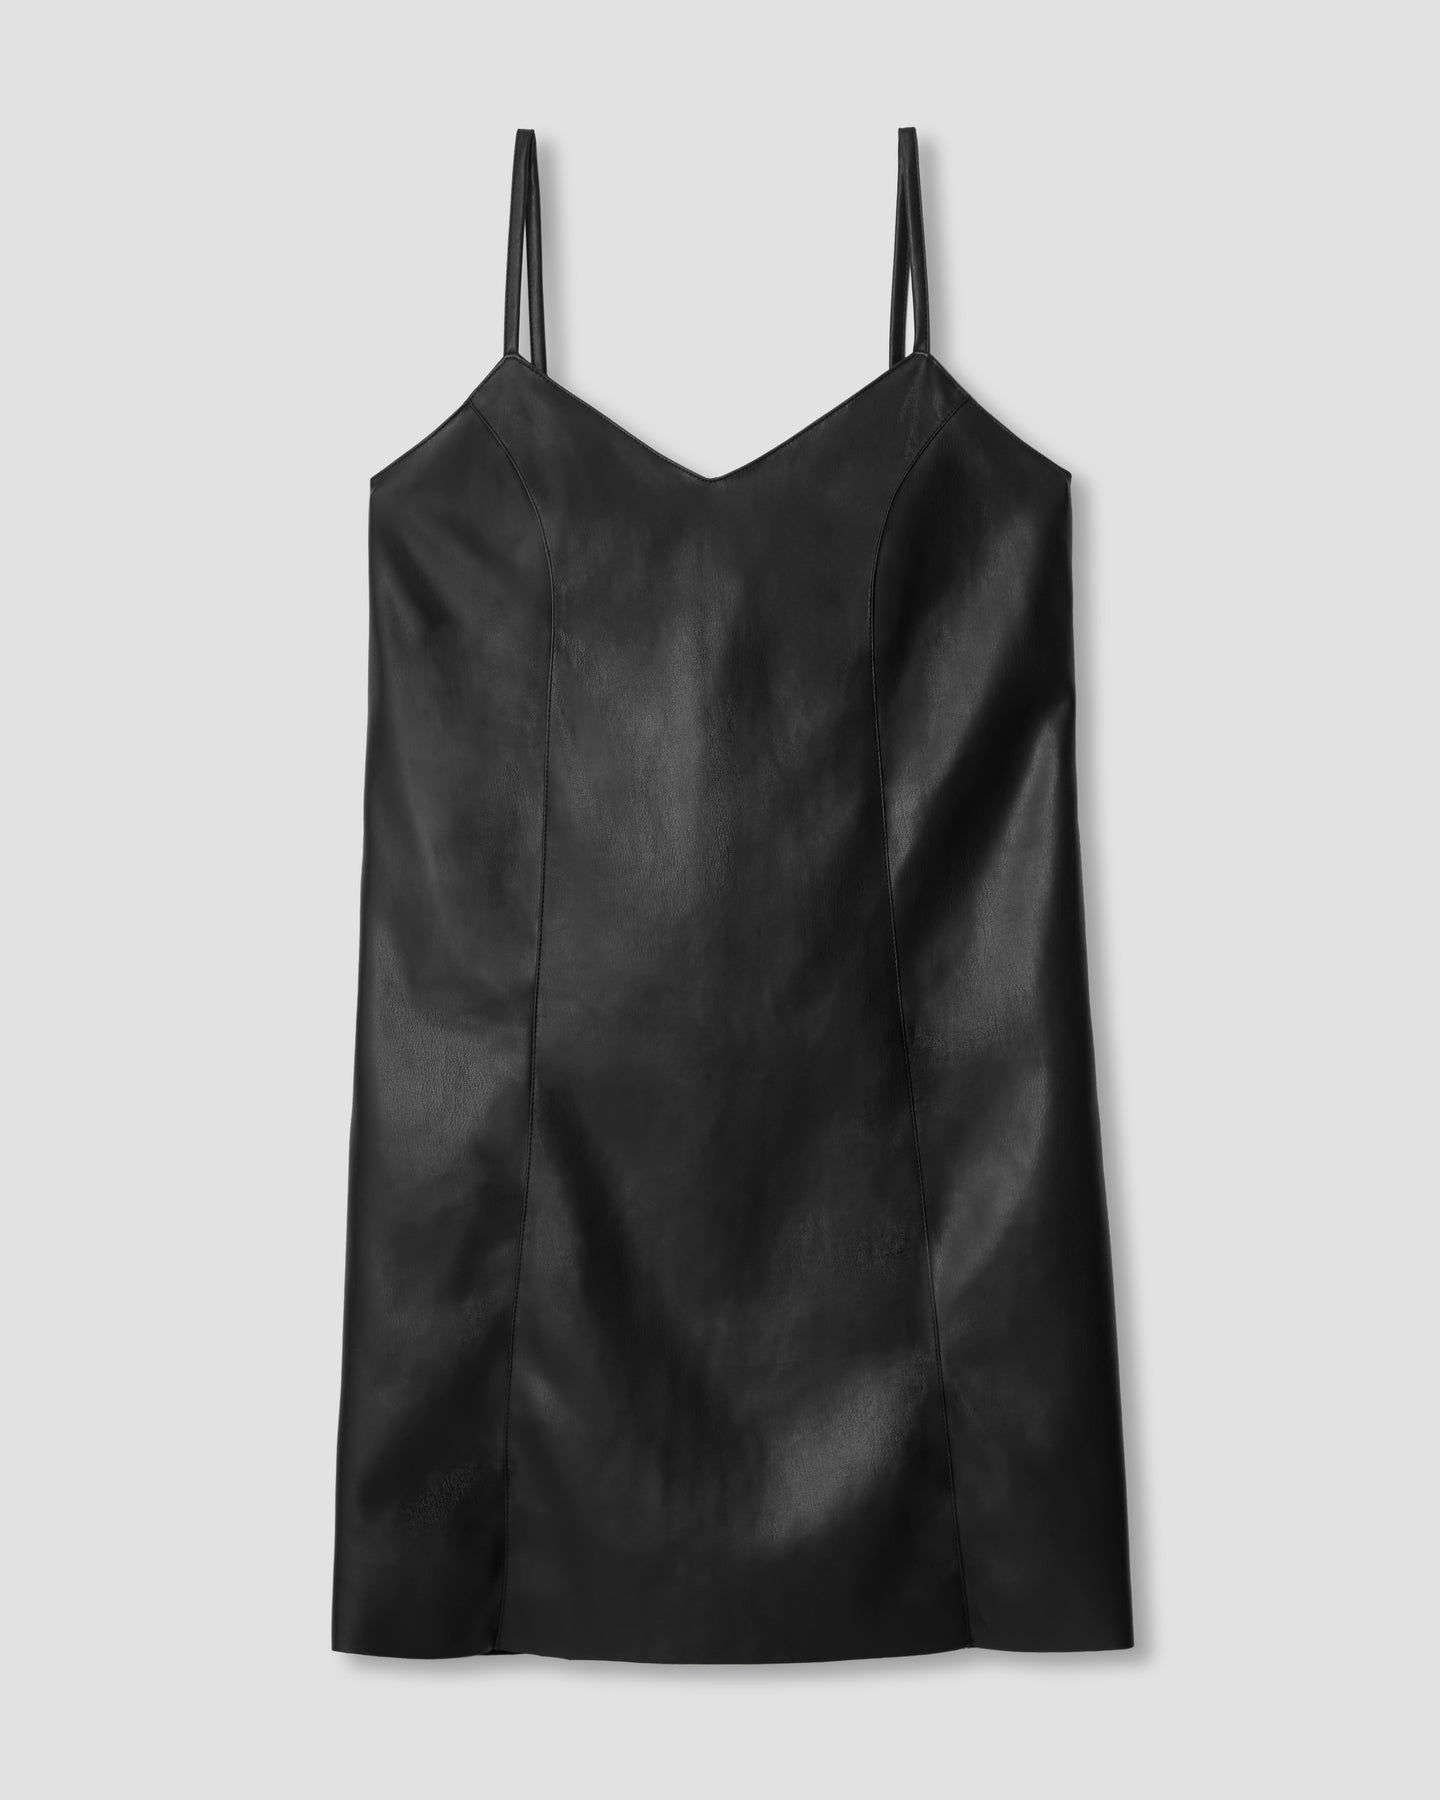 Hen Vegan Leather Slip Dress - Black - image 1